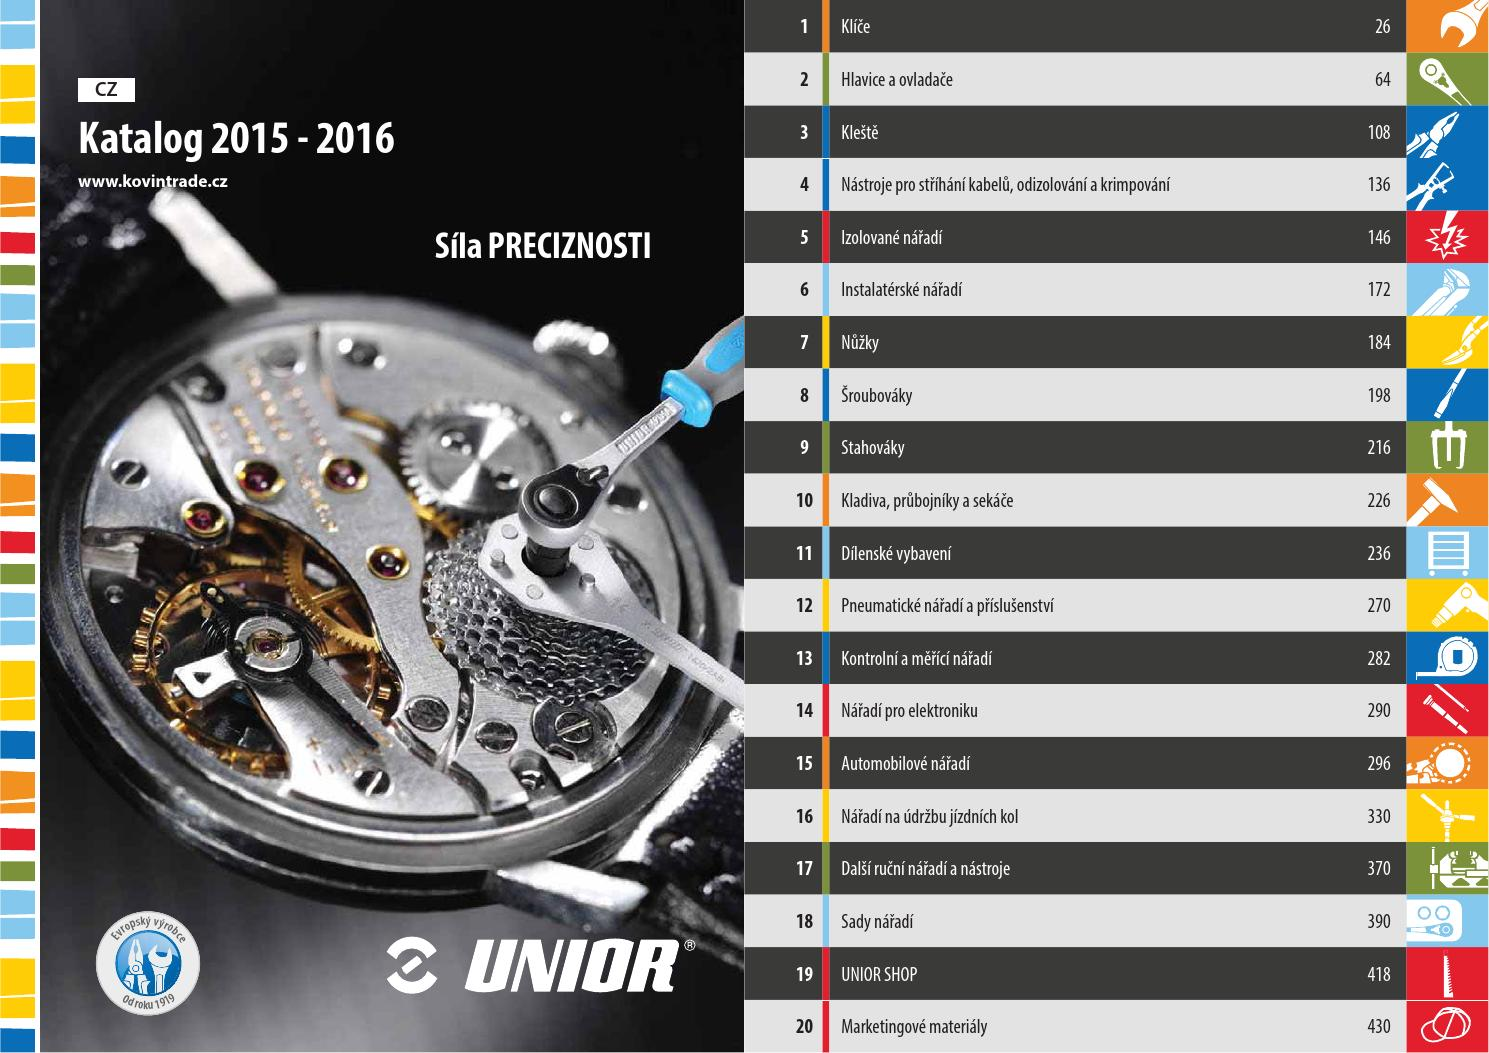 5799140b6a0 Catalogue 2015 2016 CZ by Unior d.d. - issuu